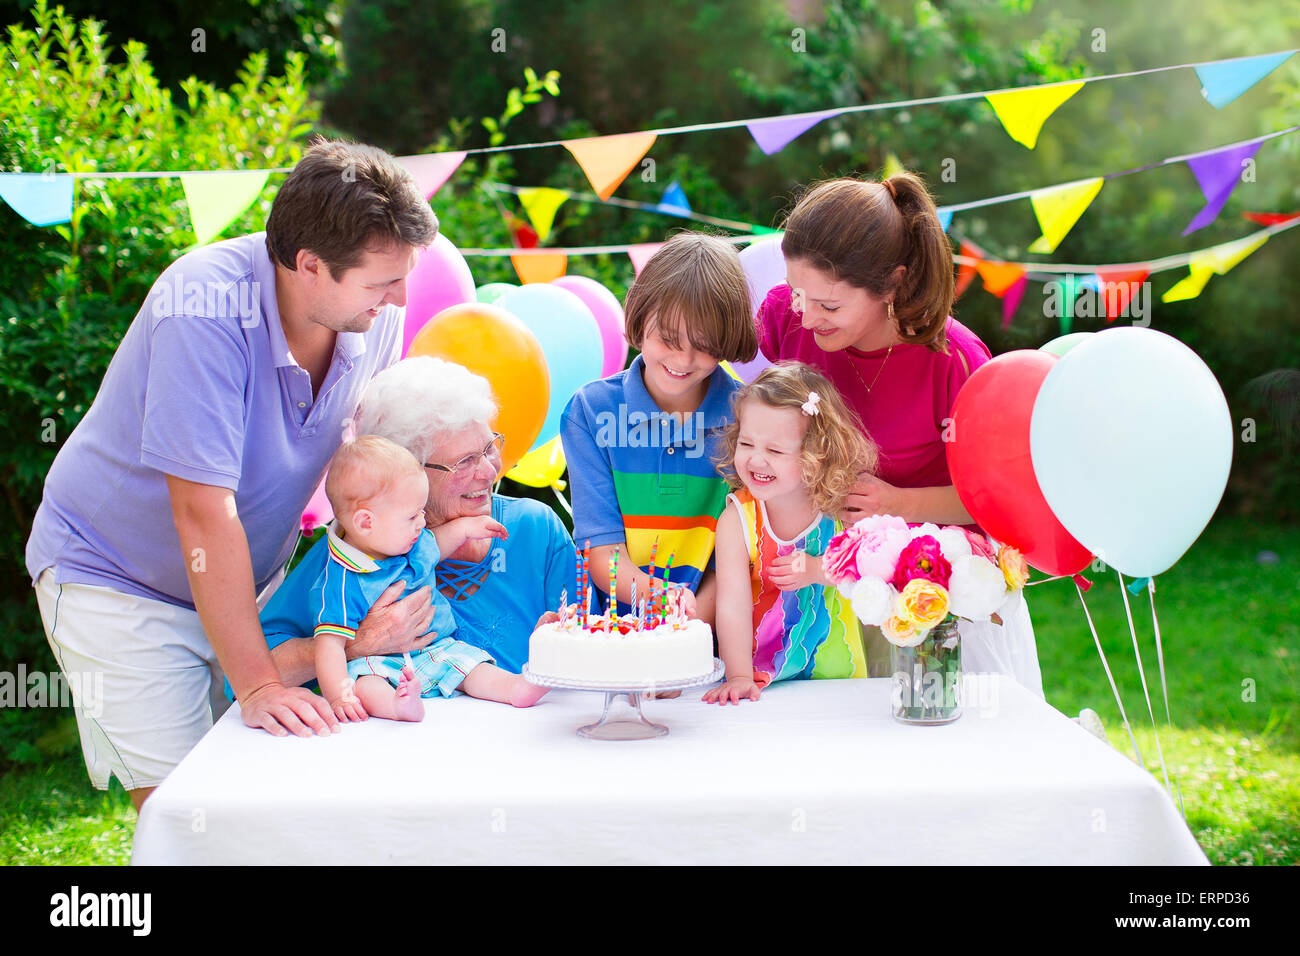 Big family with three kids and grandmother enjoying birthday party